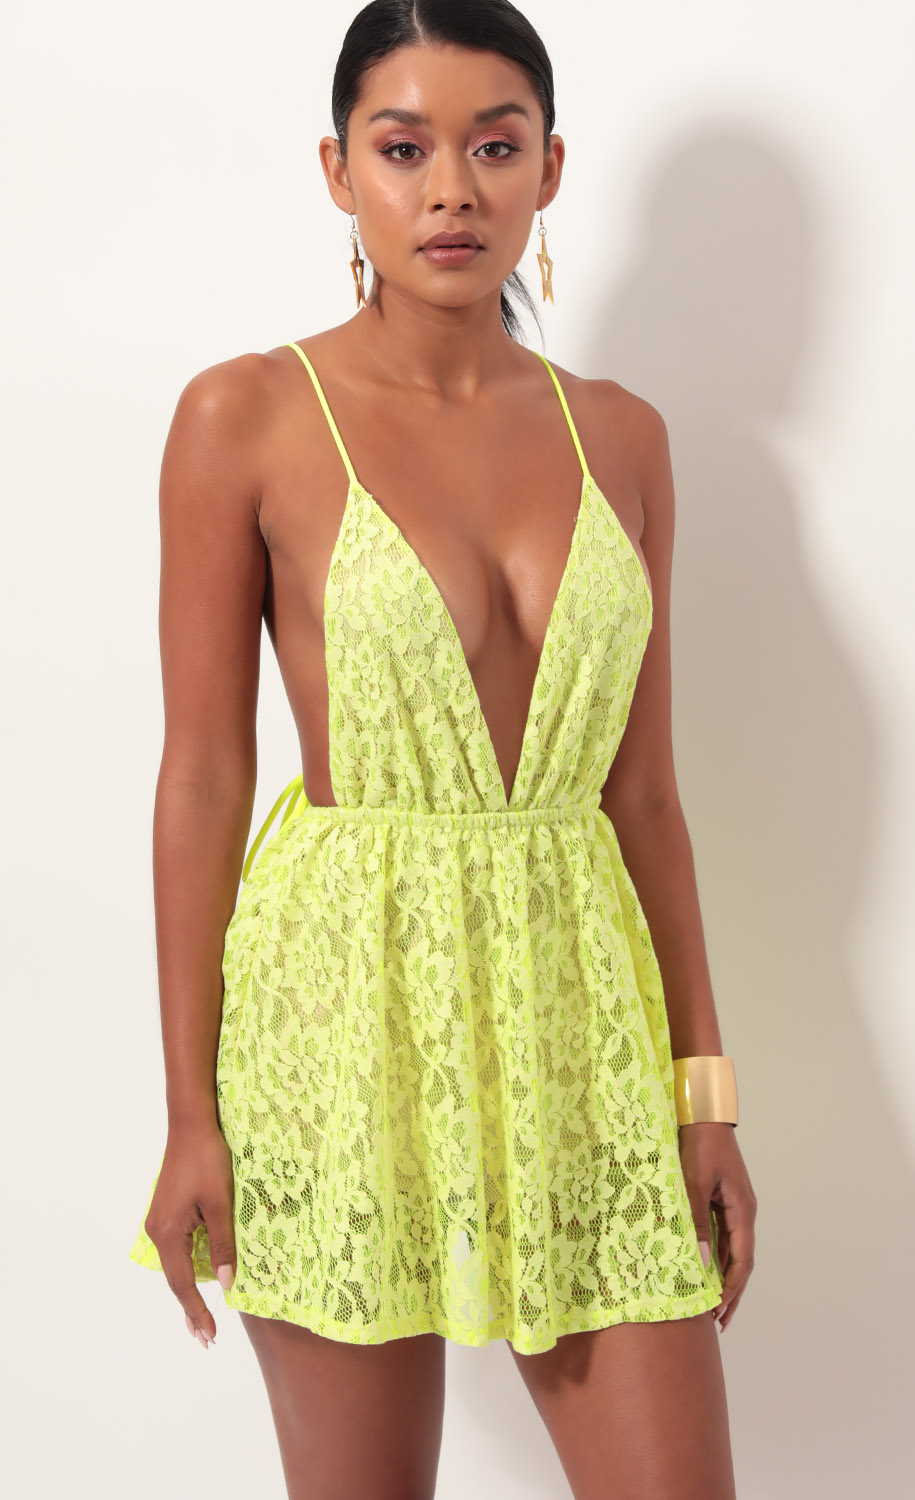 Skylar Embroidered Dress in Neon Yellow